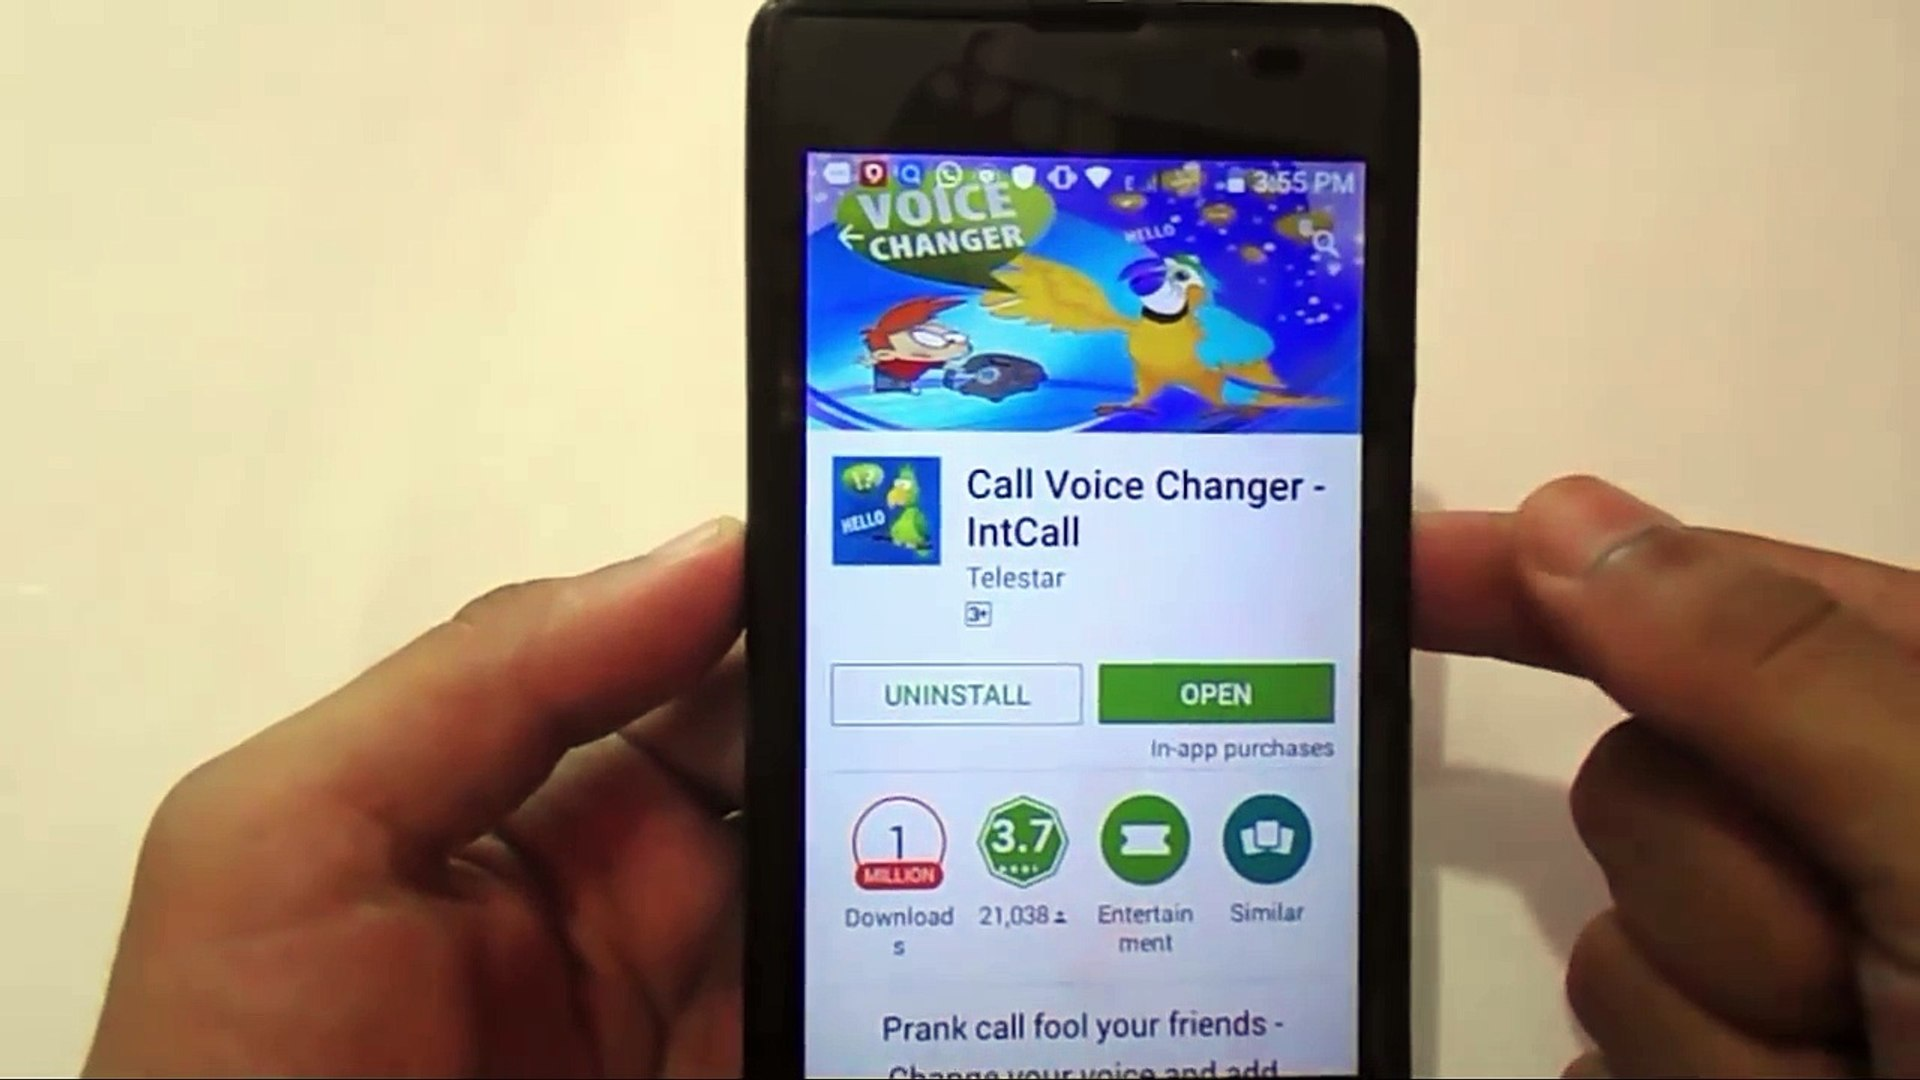 How To Change Voice During Call?